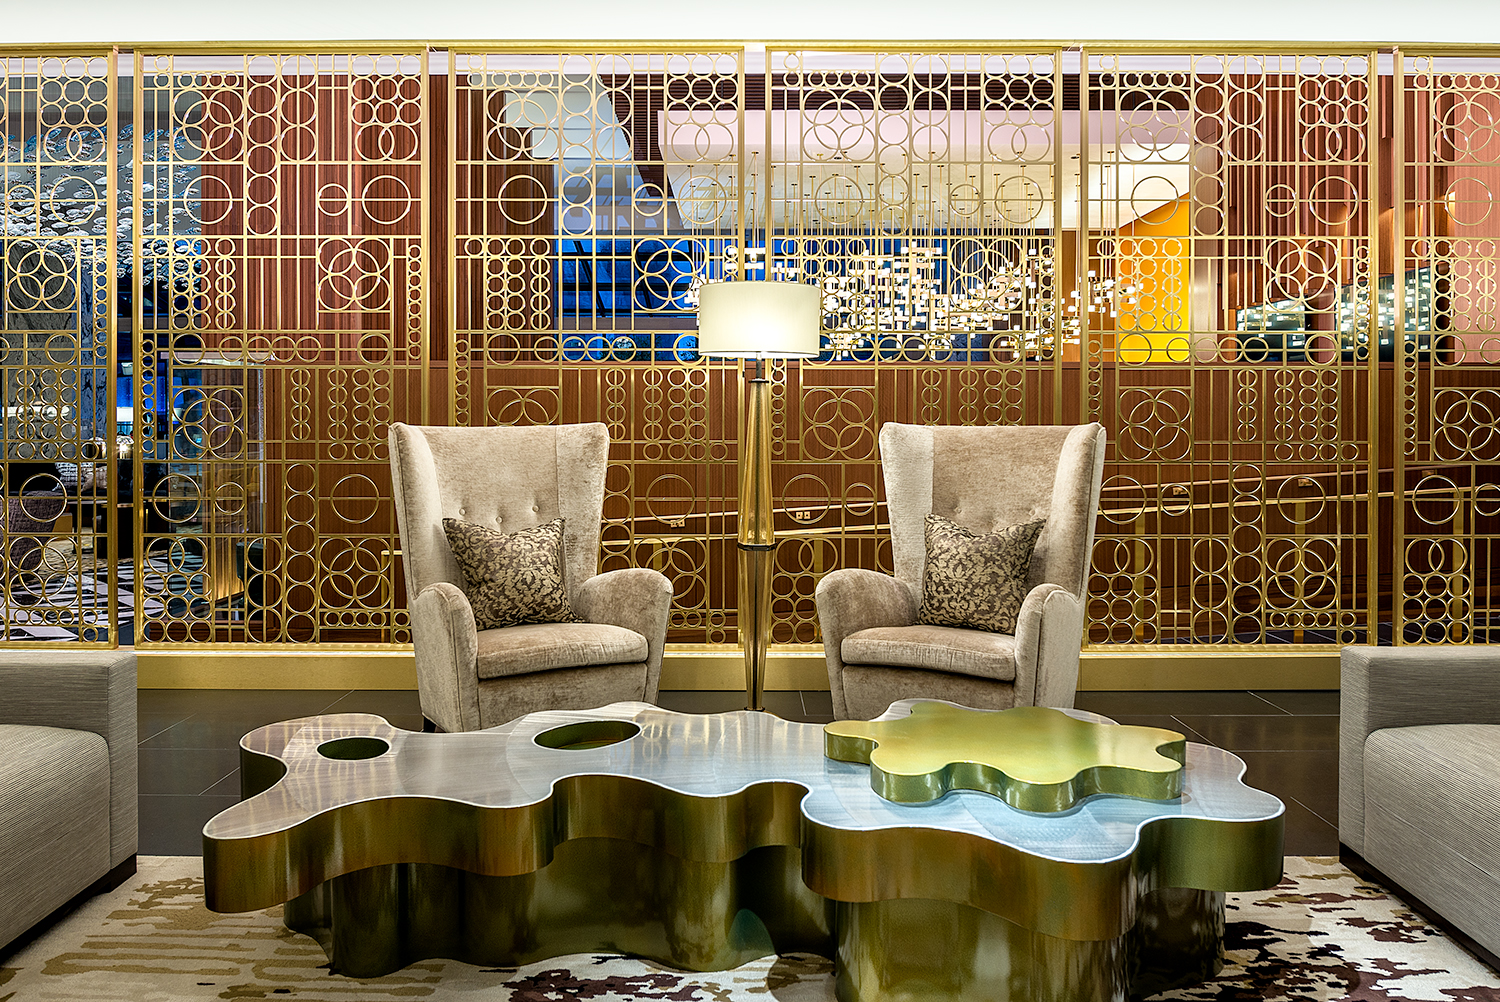 Ritz_Carlton_Lobby-078-Edit.jpg